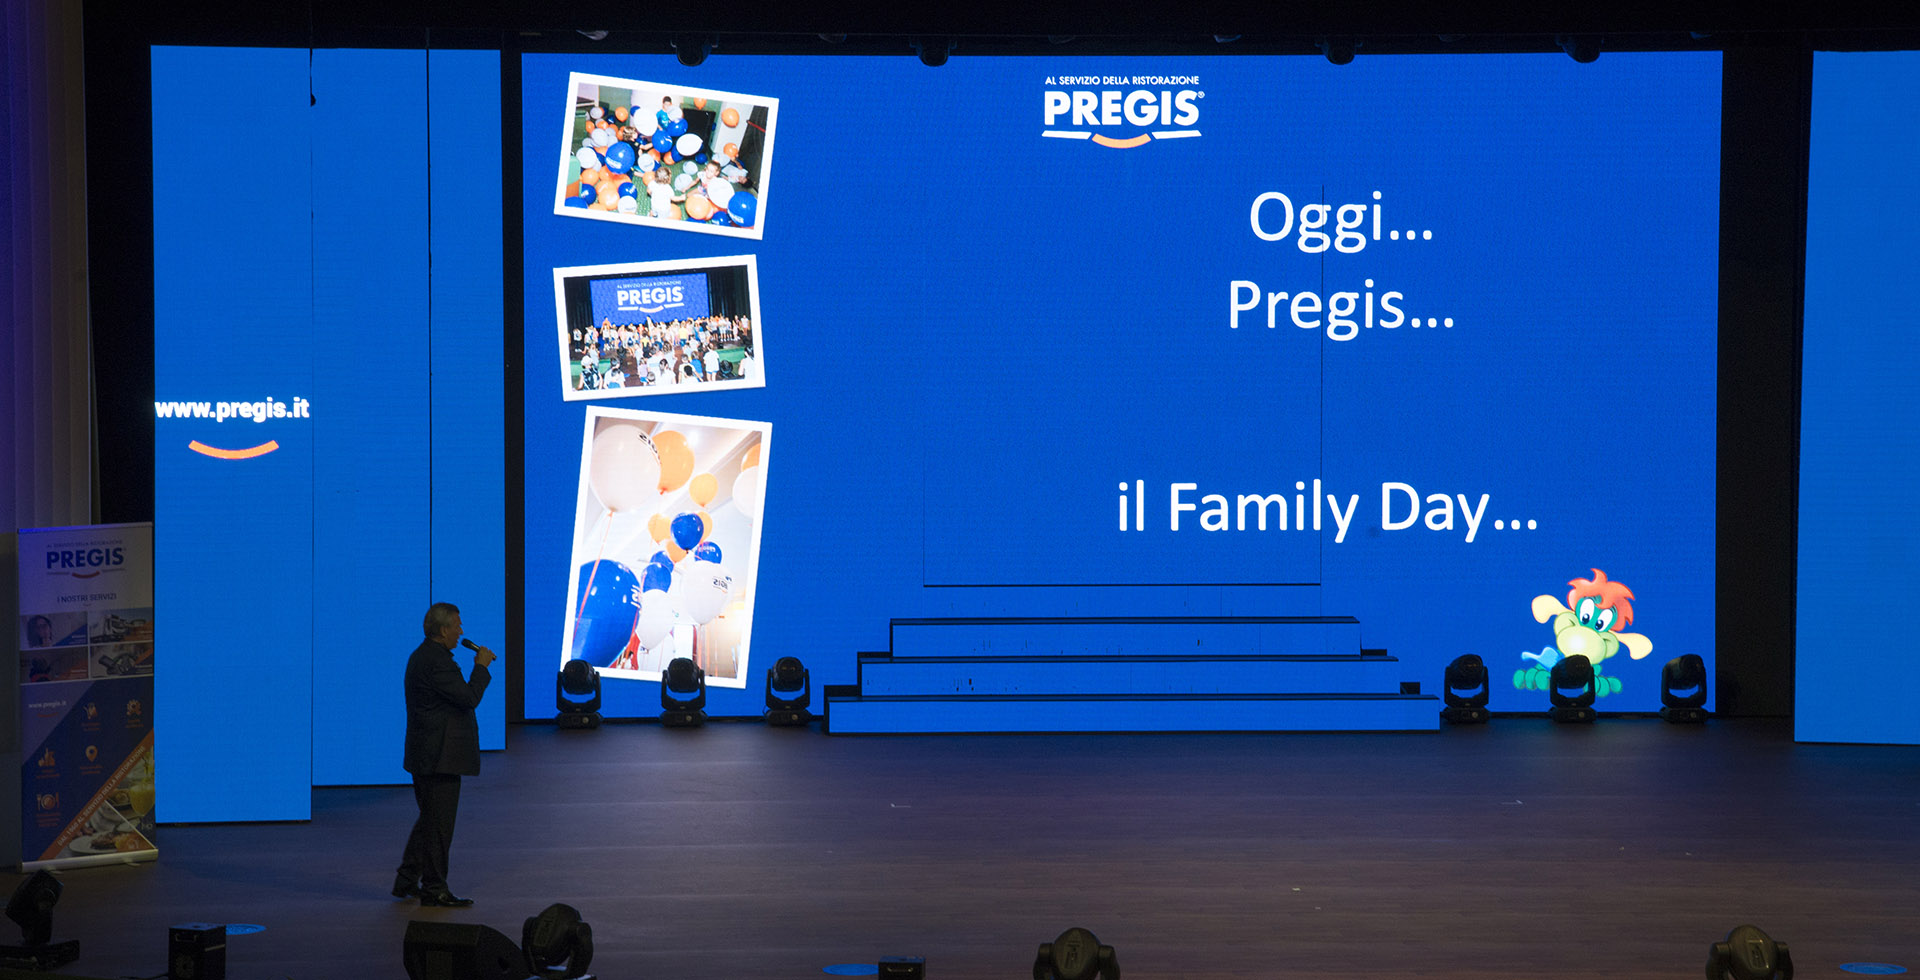 2 Family Day Pregis 15092019 (15)